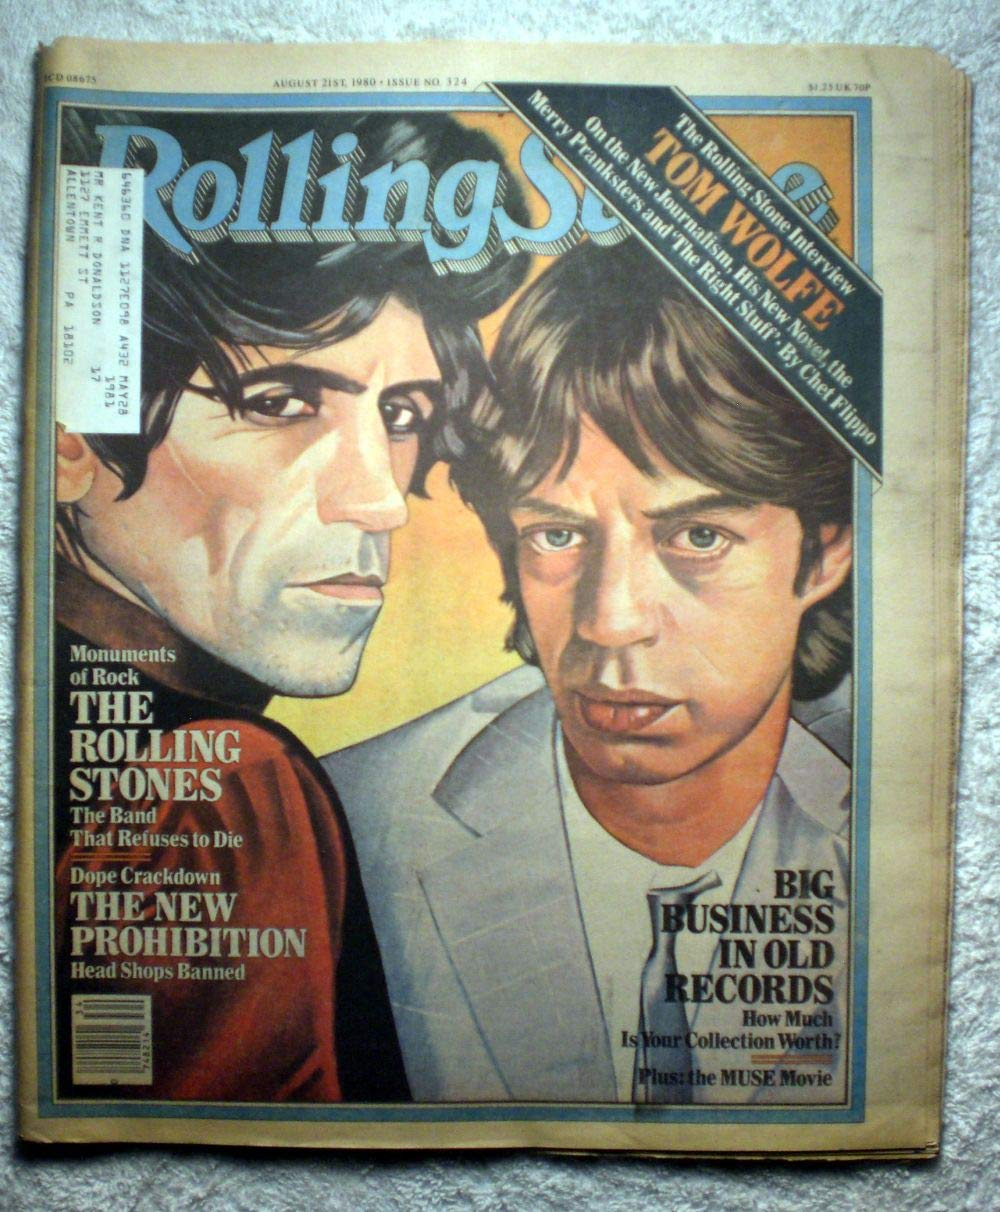 Mick Jagger & Keith Richards - The Rolling Stones - Rolling Stone Magazine - #324 - August 21, 1980 - Marijuana: The New Prohibition - Head Shops Banned, Pricing Your Old Record Collection (LPs) articles